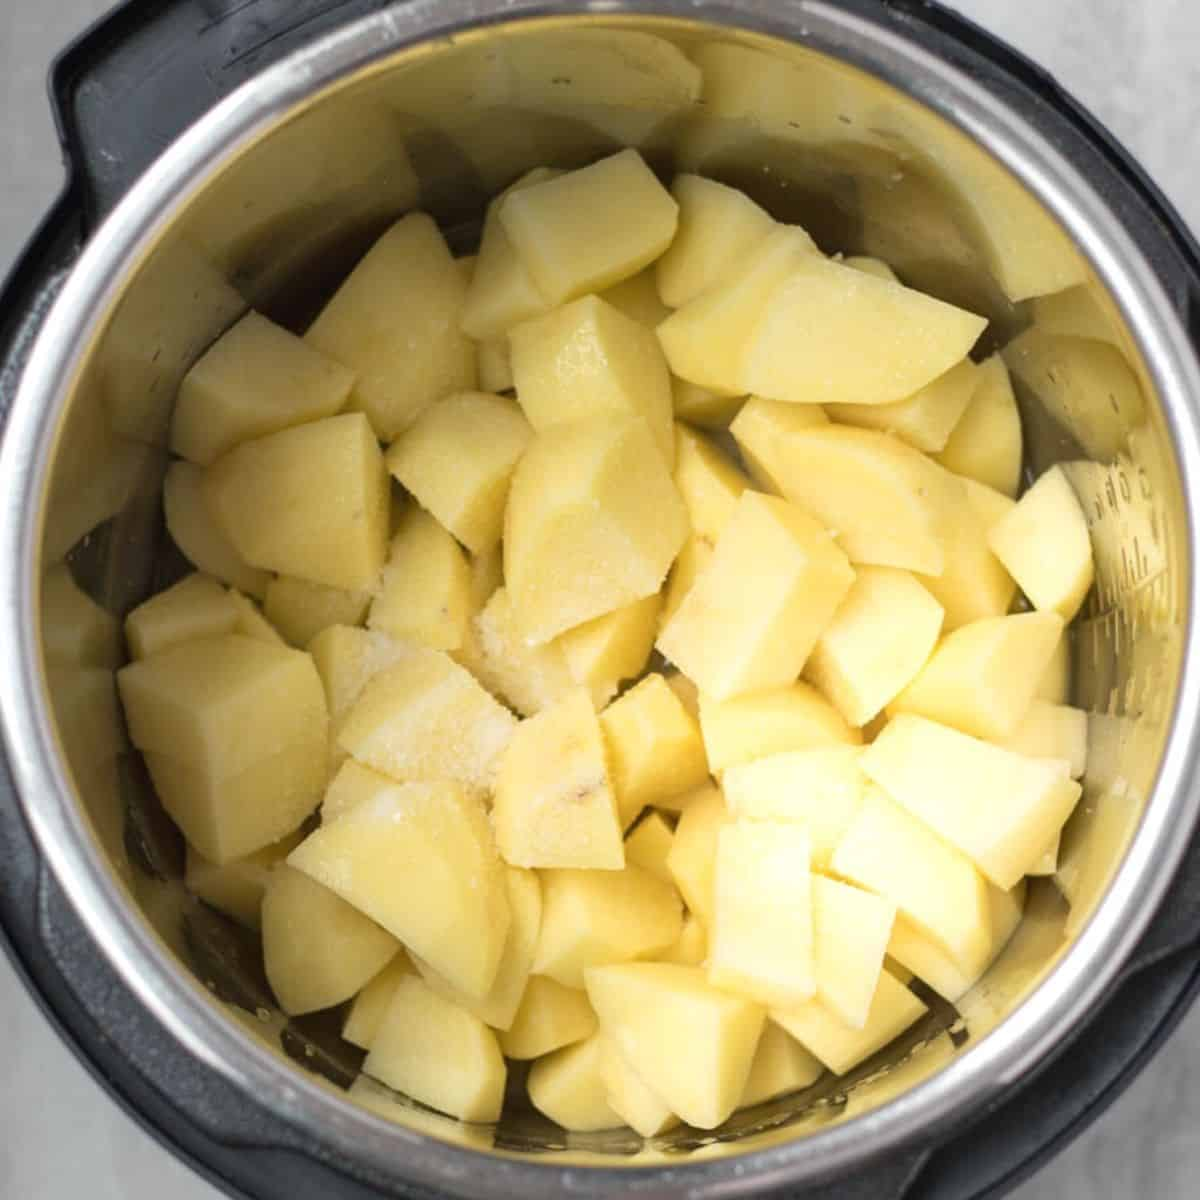 Raw Potatoes in the inner pot with salt and water.